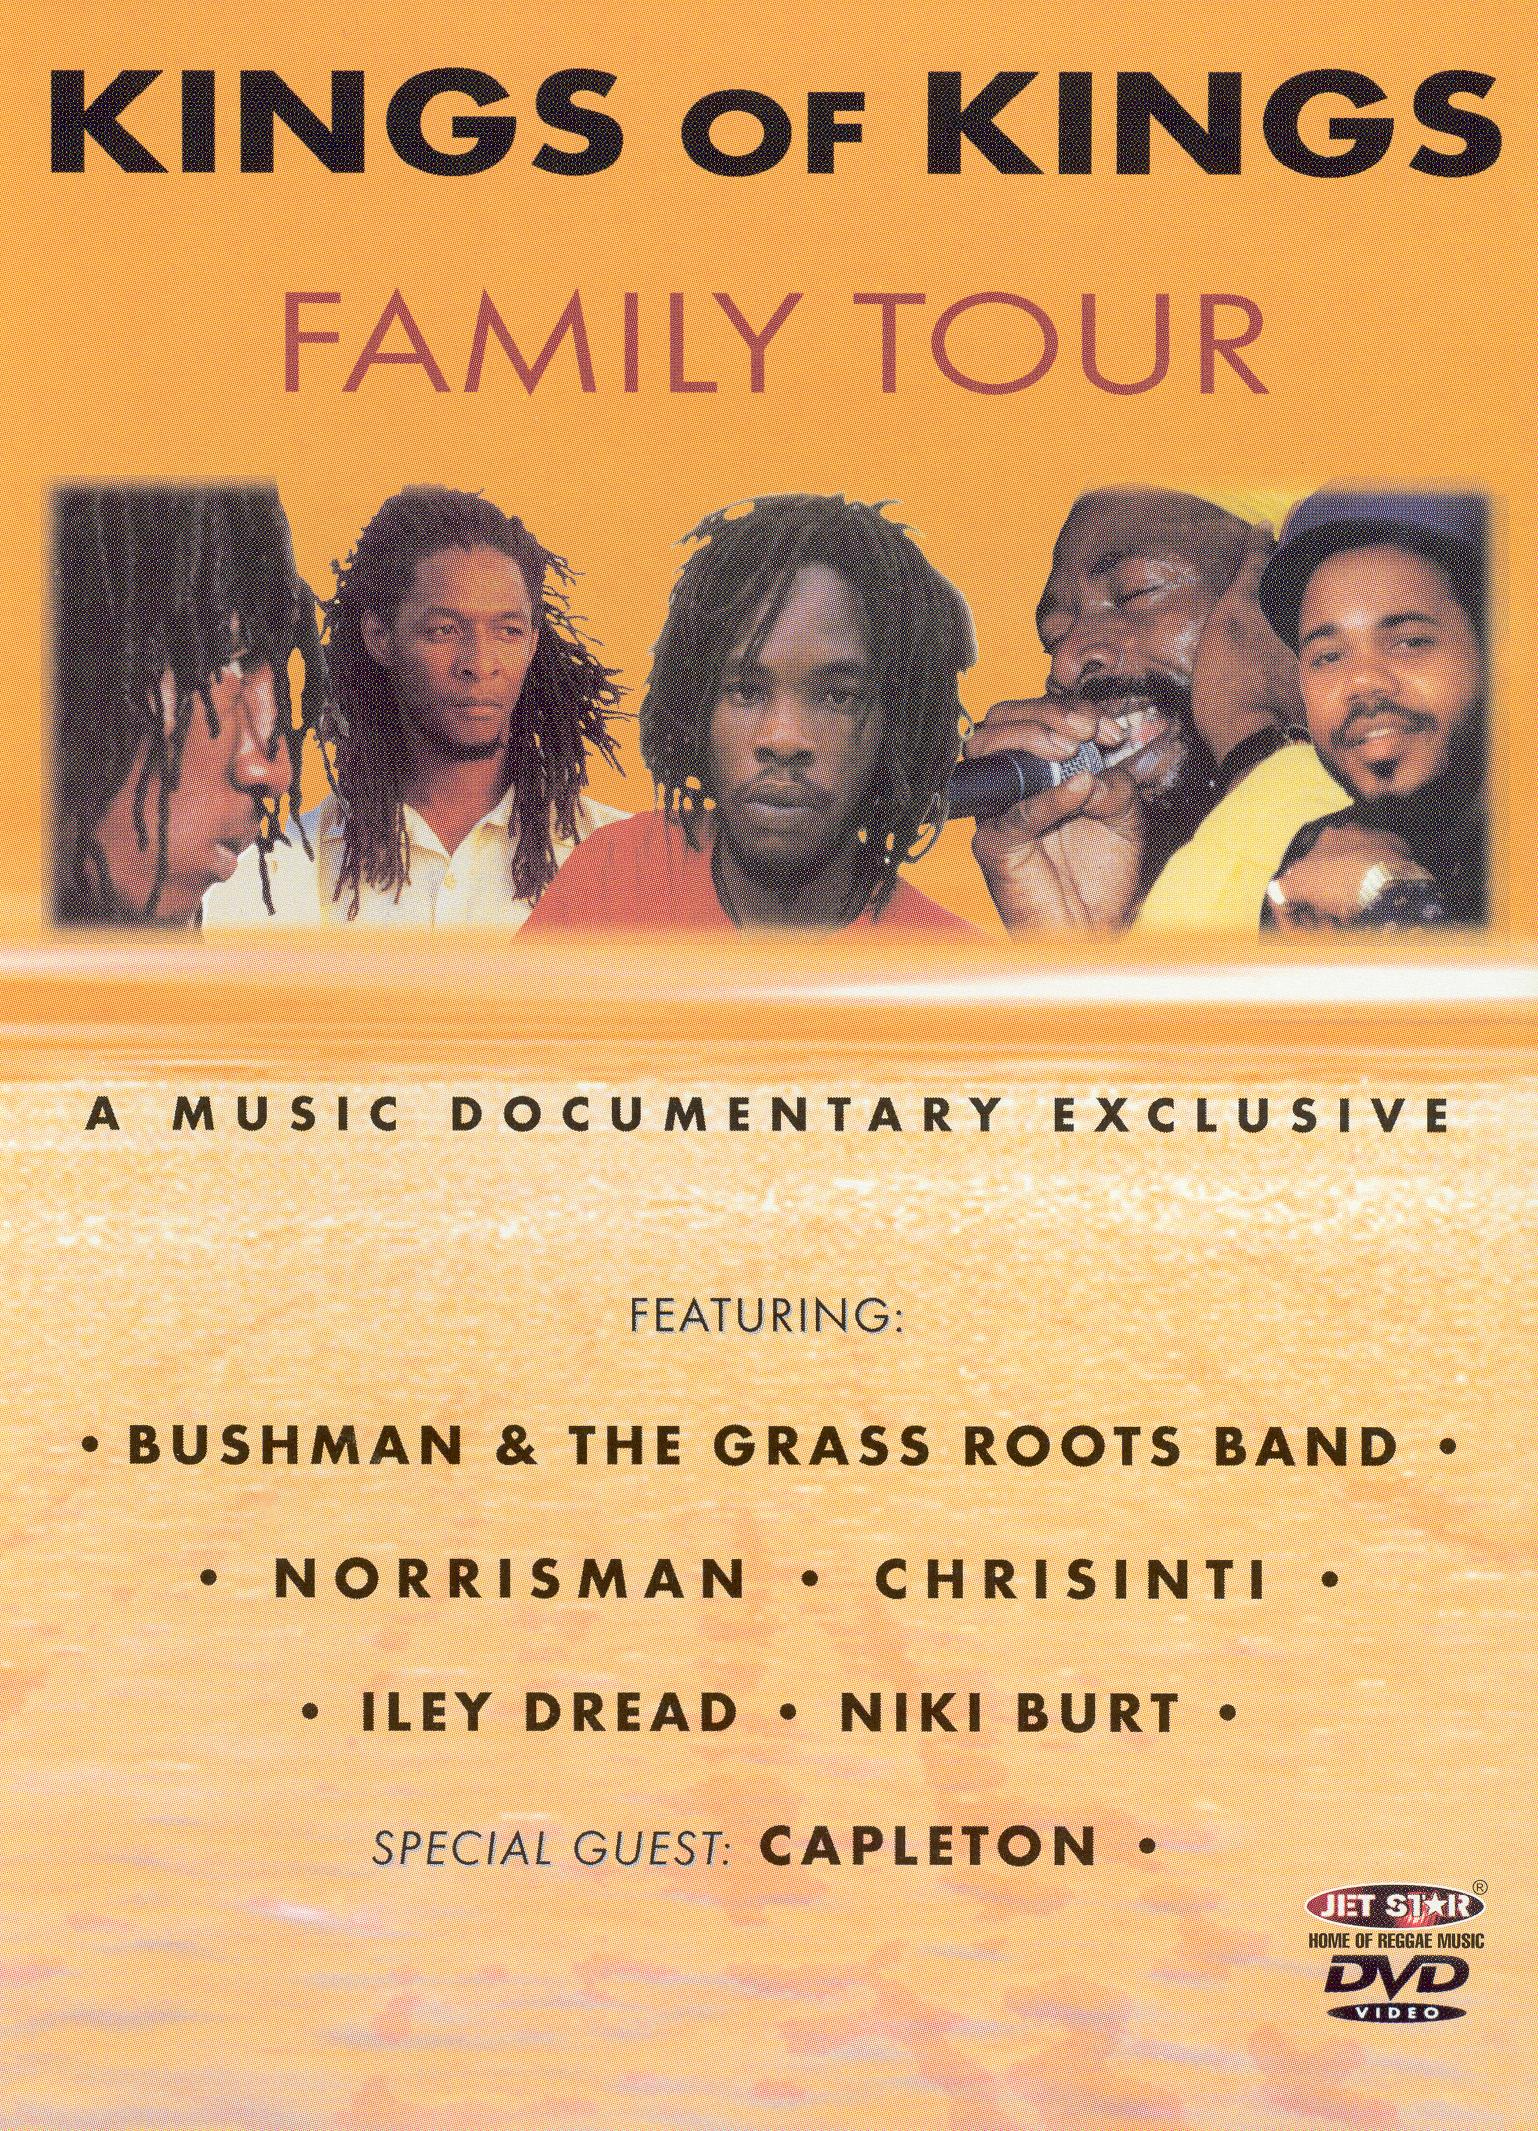 Kings of Kings Family Tour